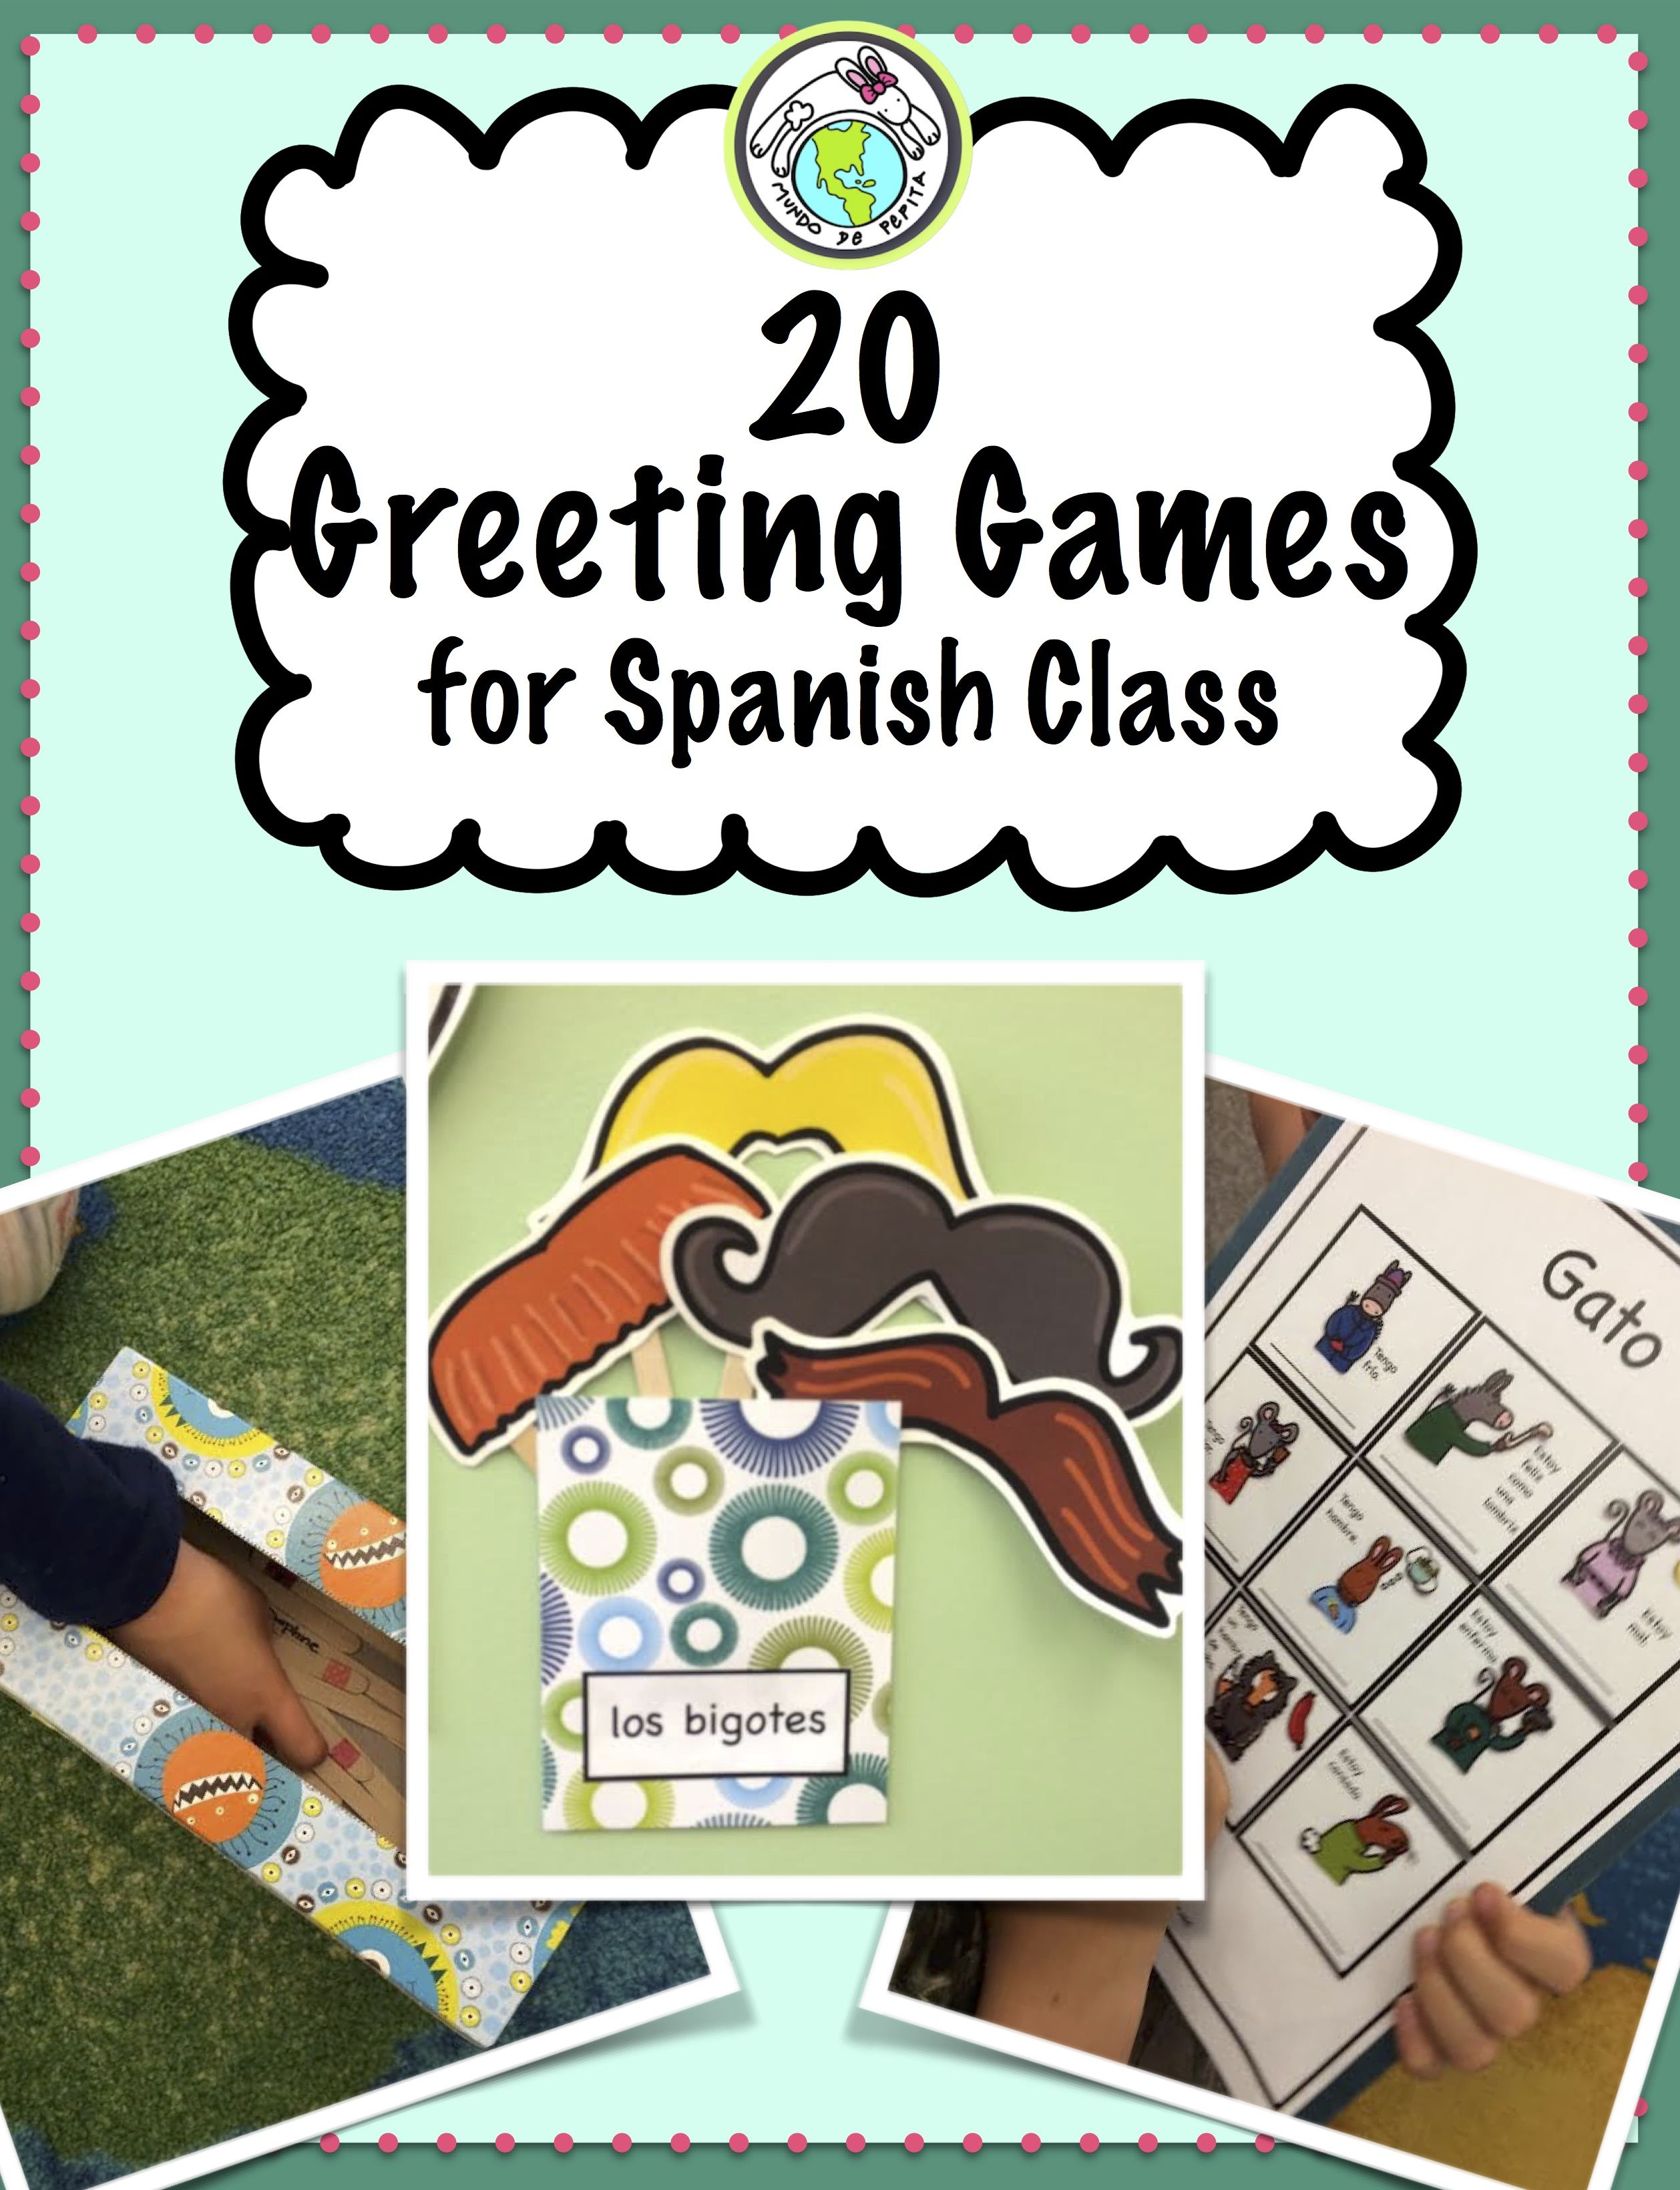 20 Greeting Games For Spanish Class With Printables Elementary Spanish Spanish Class Learning Spanish [ 3280 x 2516 Pixel ]